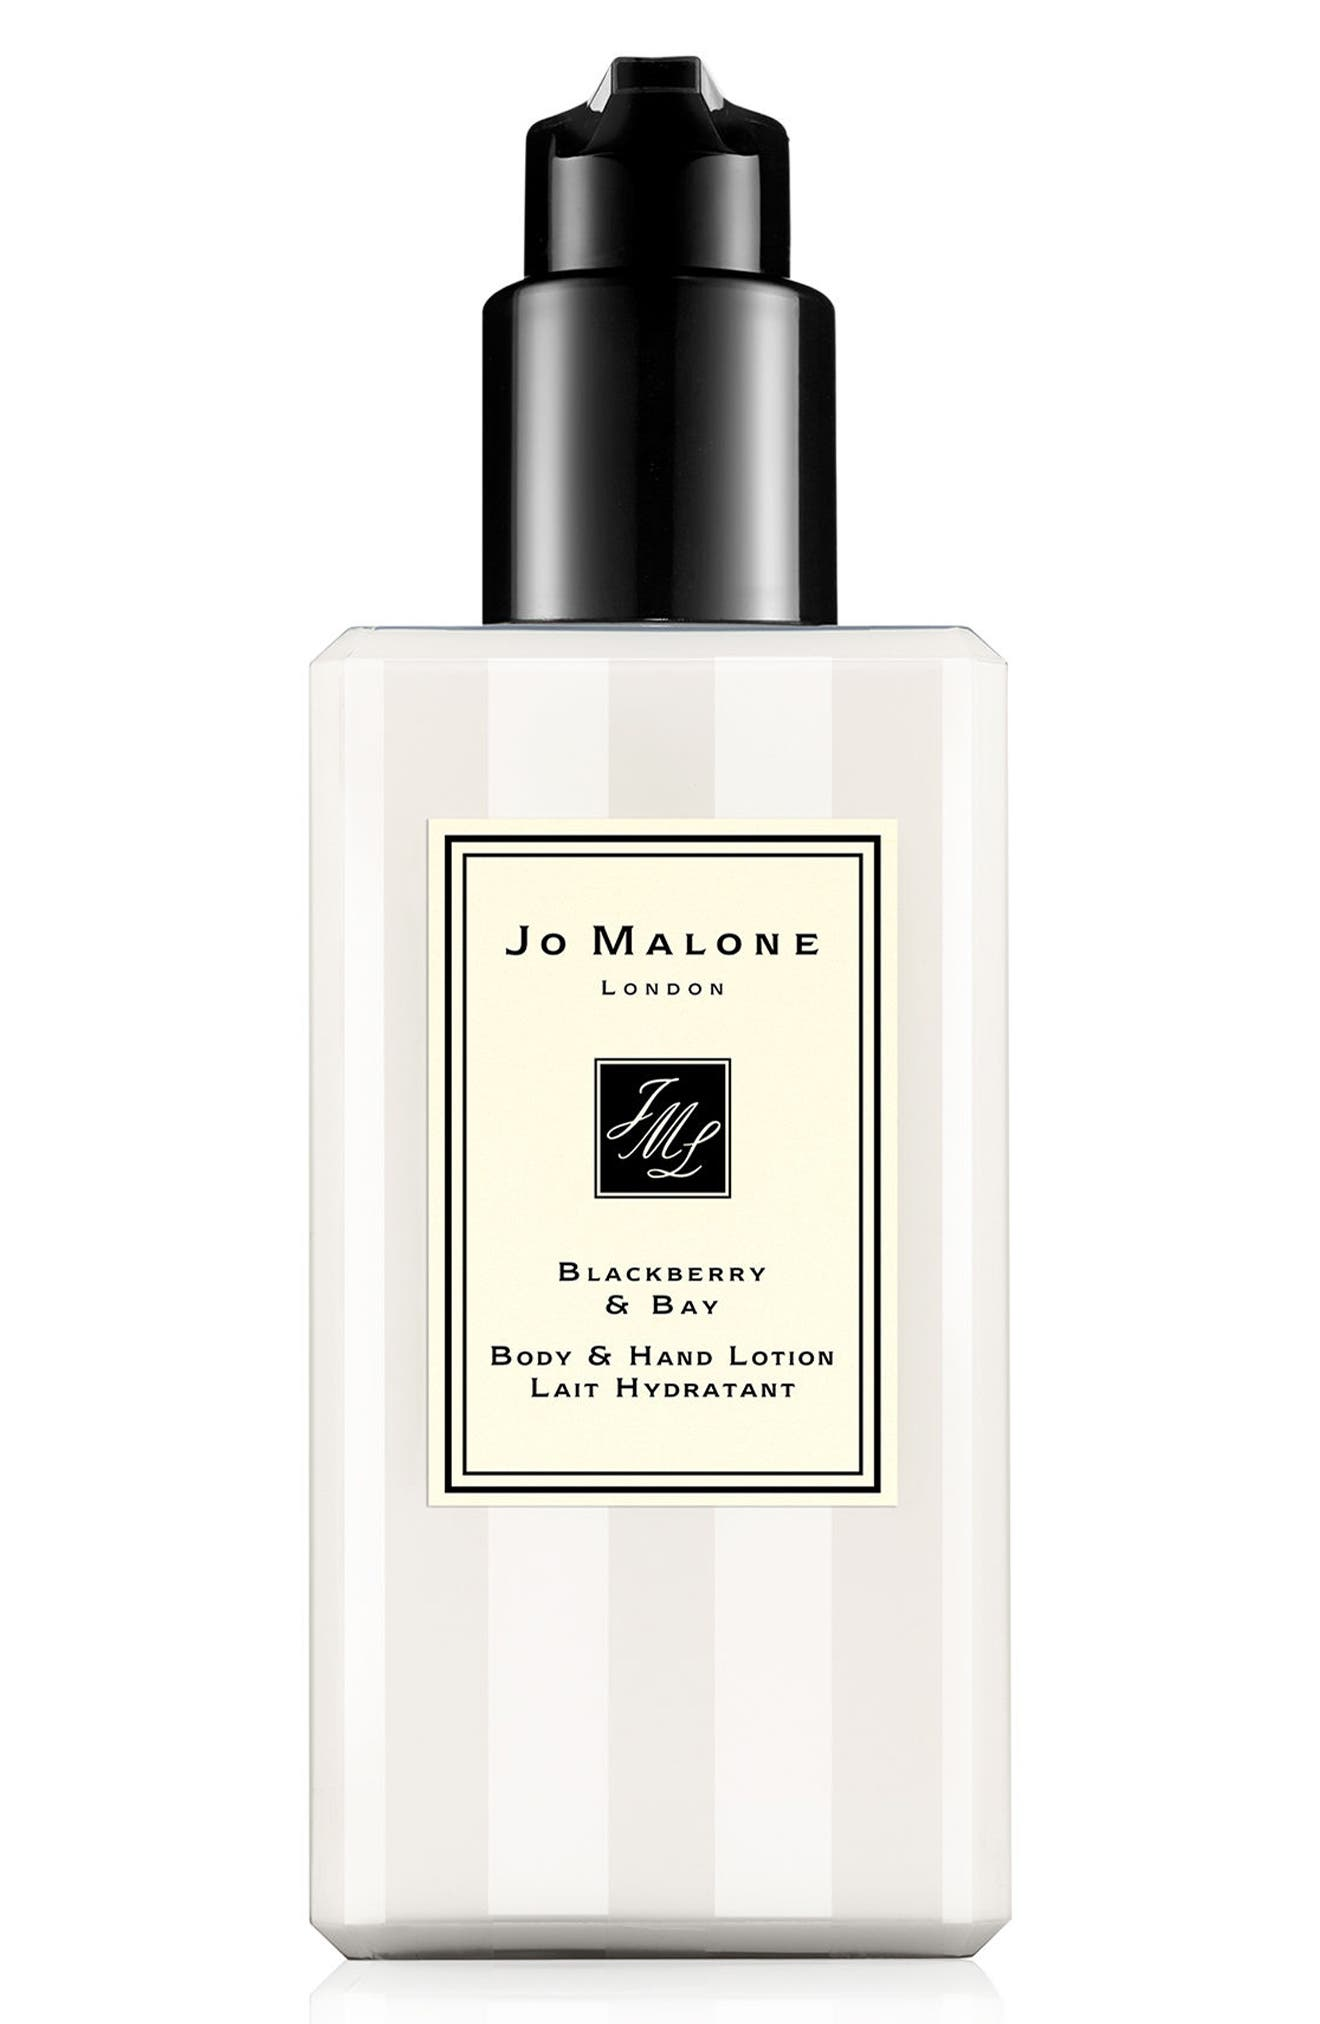 Jo Malone London™ 'Blackberry & Bay' Body & Hand Lotion